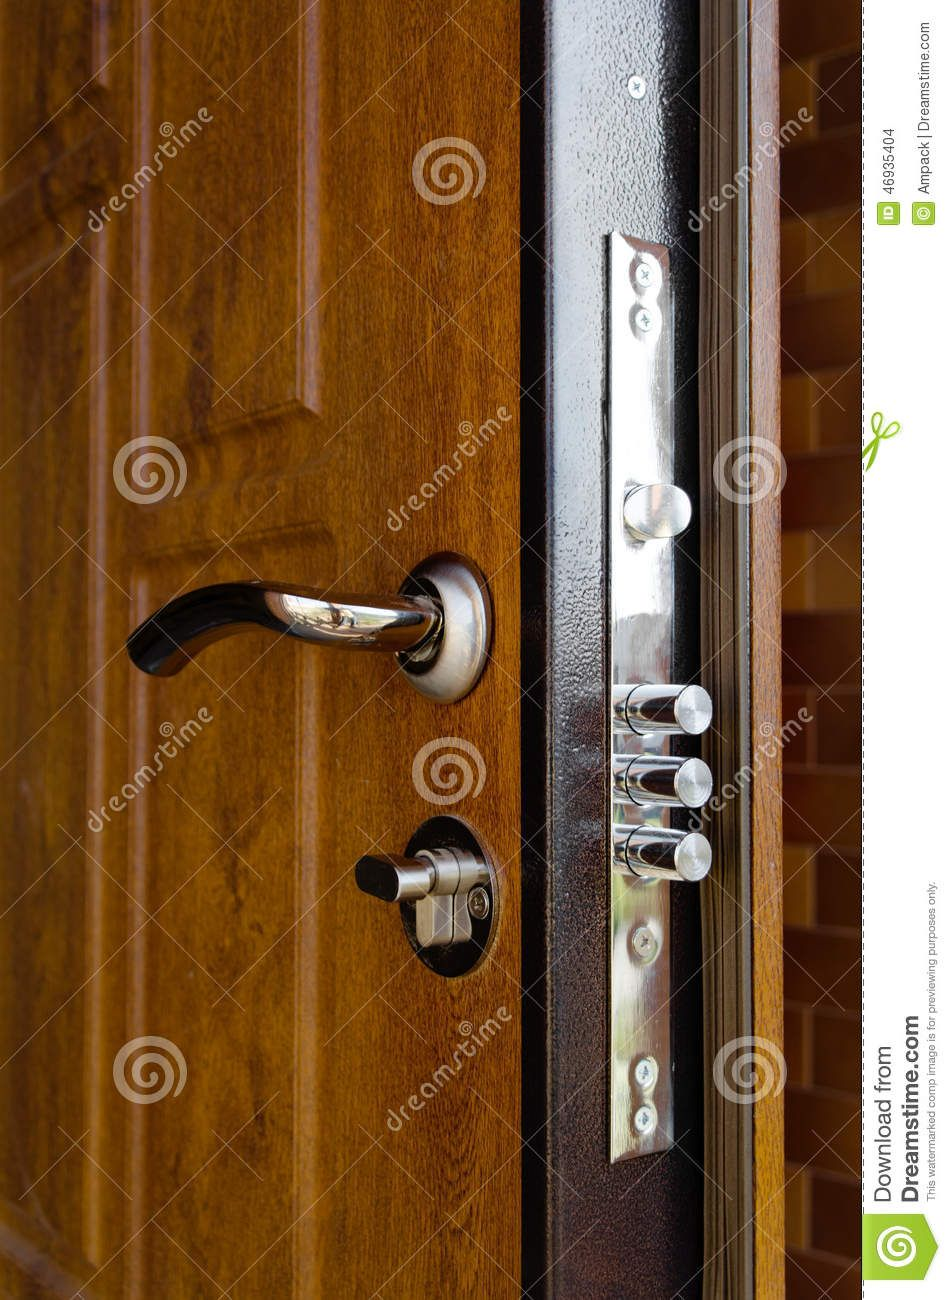 triple-cylinders-new-high-security-lock-installed-wooden-front ...